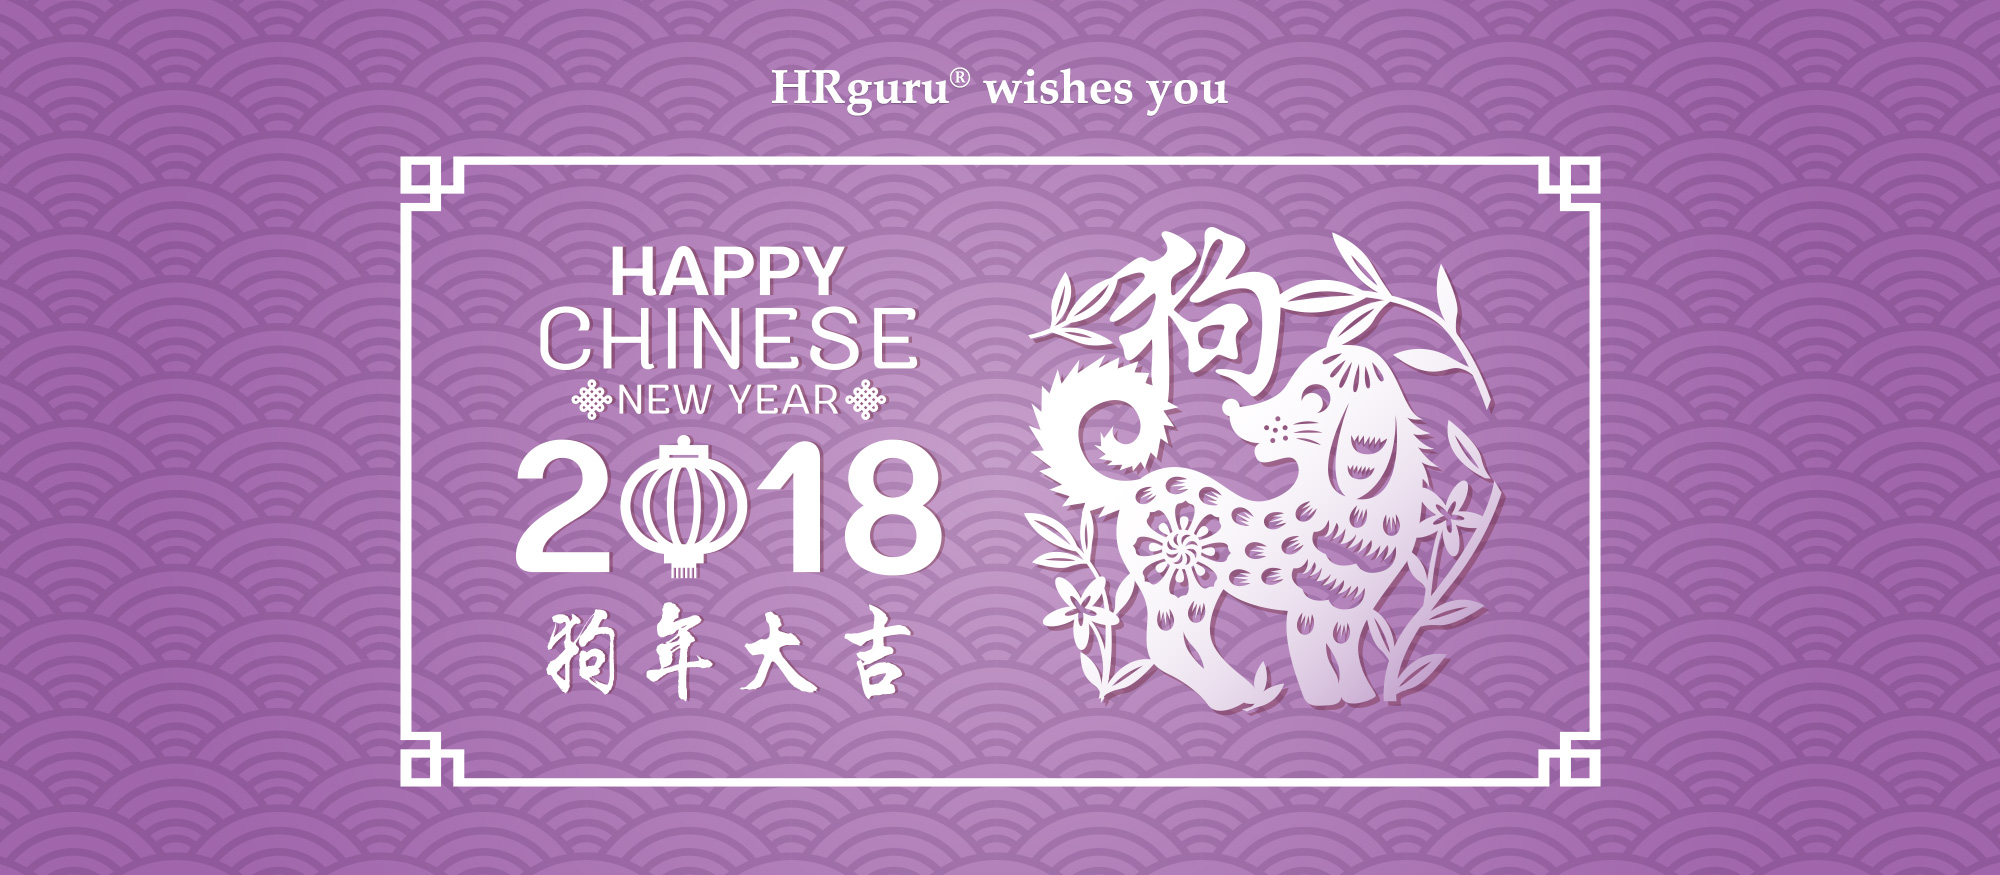 Happy Chinese New Year & Gong Xi Fa Cai!